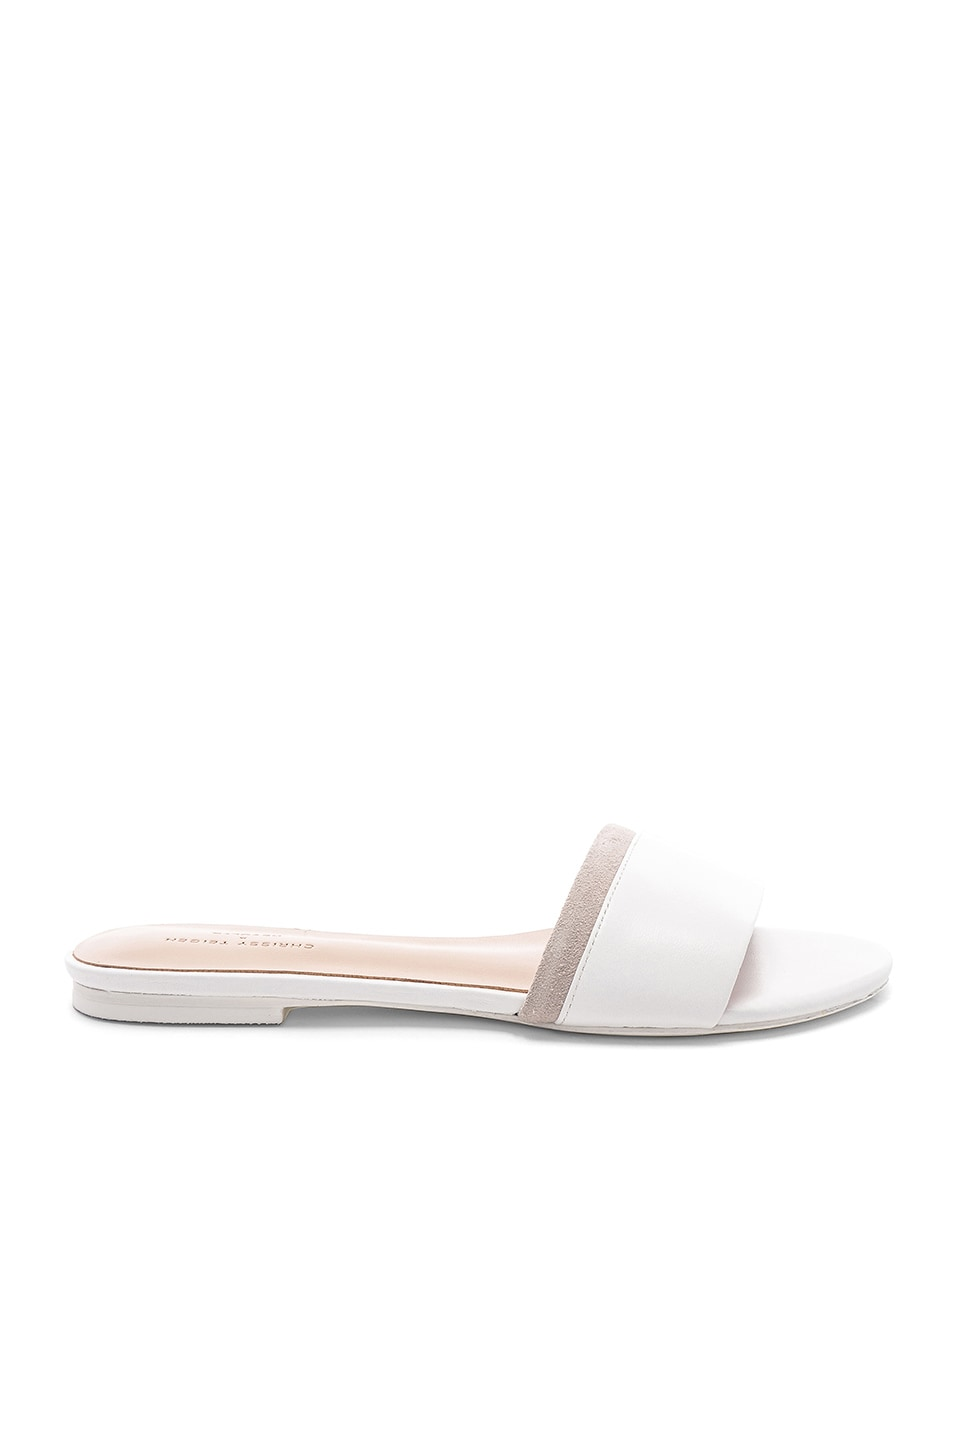 Chrissy Teigen x REVOLVE Bennett Slide in White